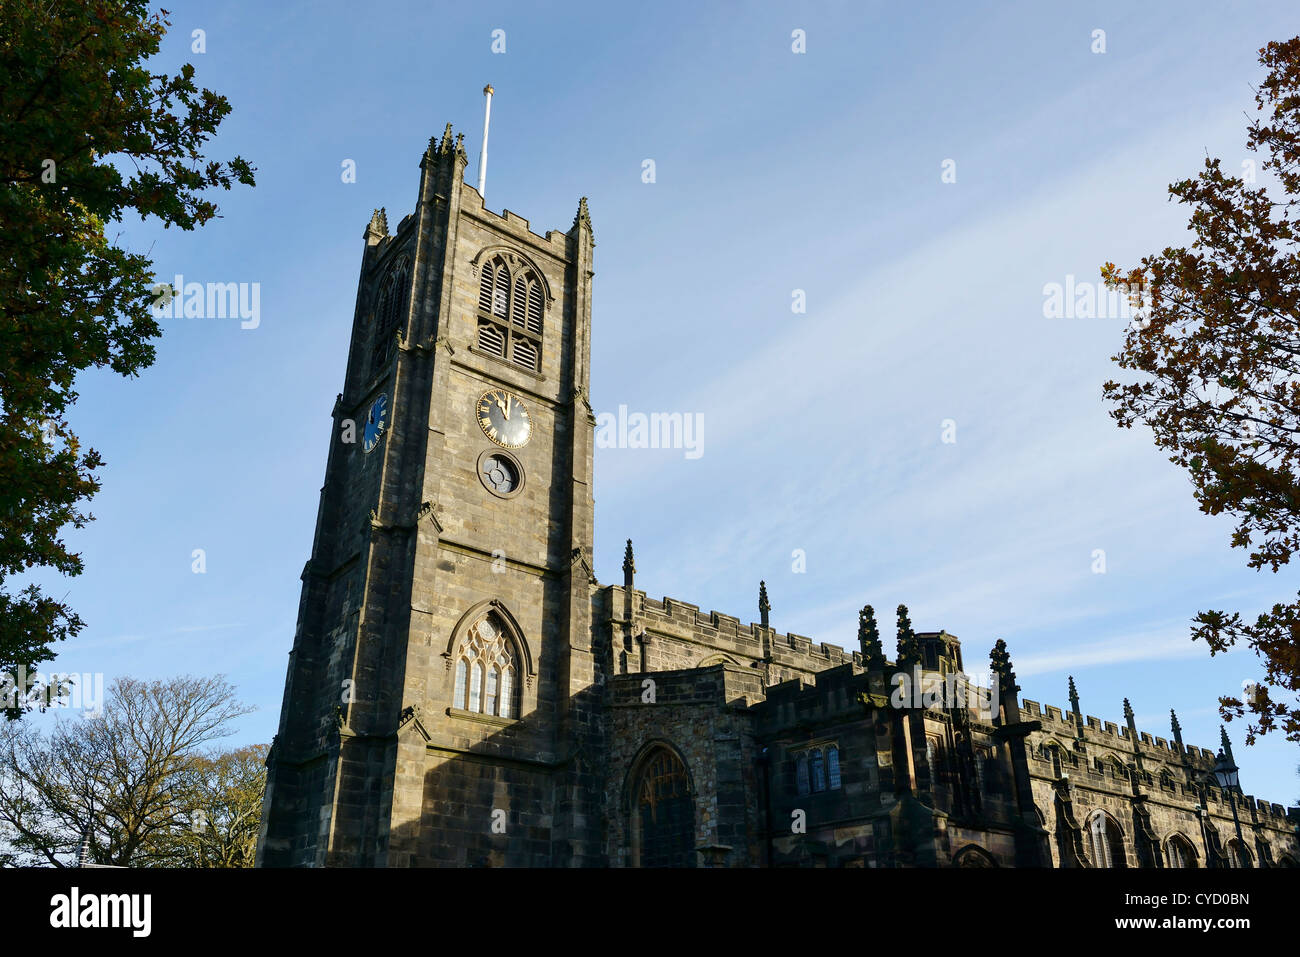 The Priory Church of St Mary Lancaster UK - Stock Image